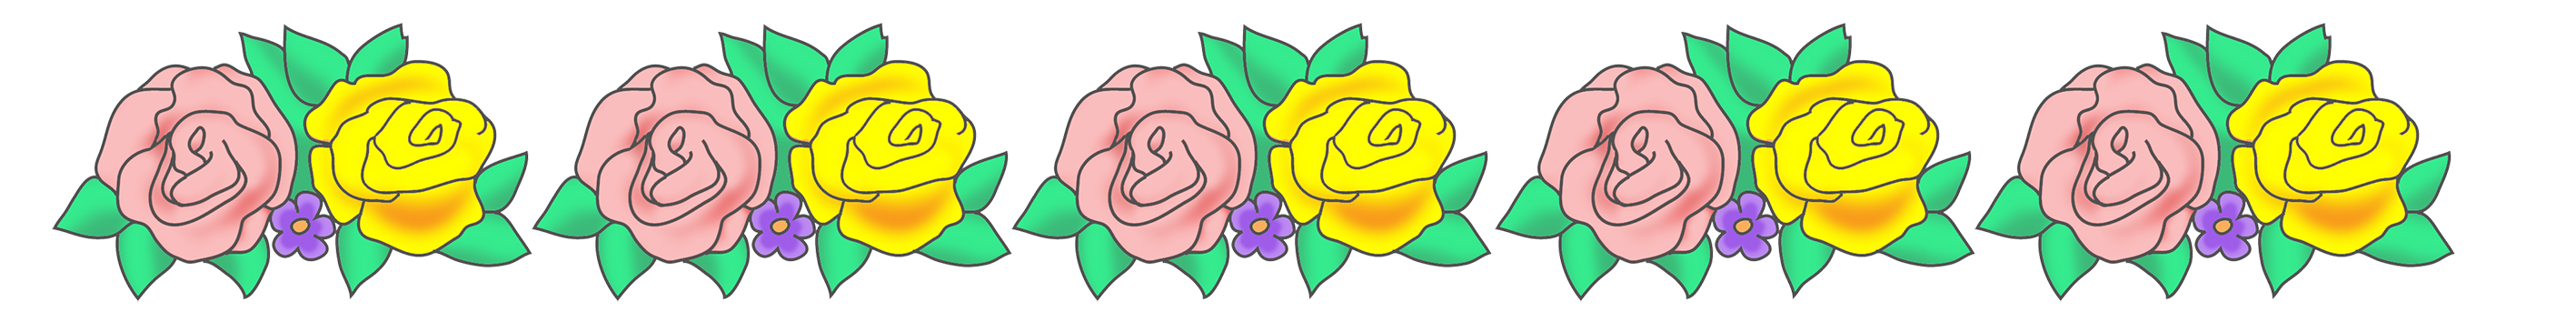 Yellow Rose clipart boarder Flower borders border rose and